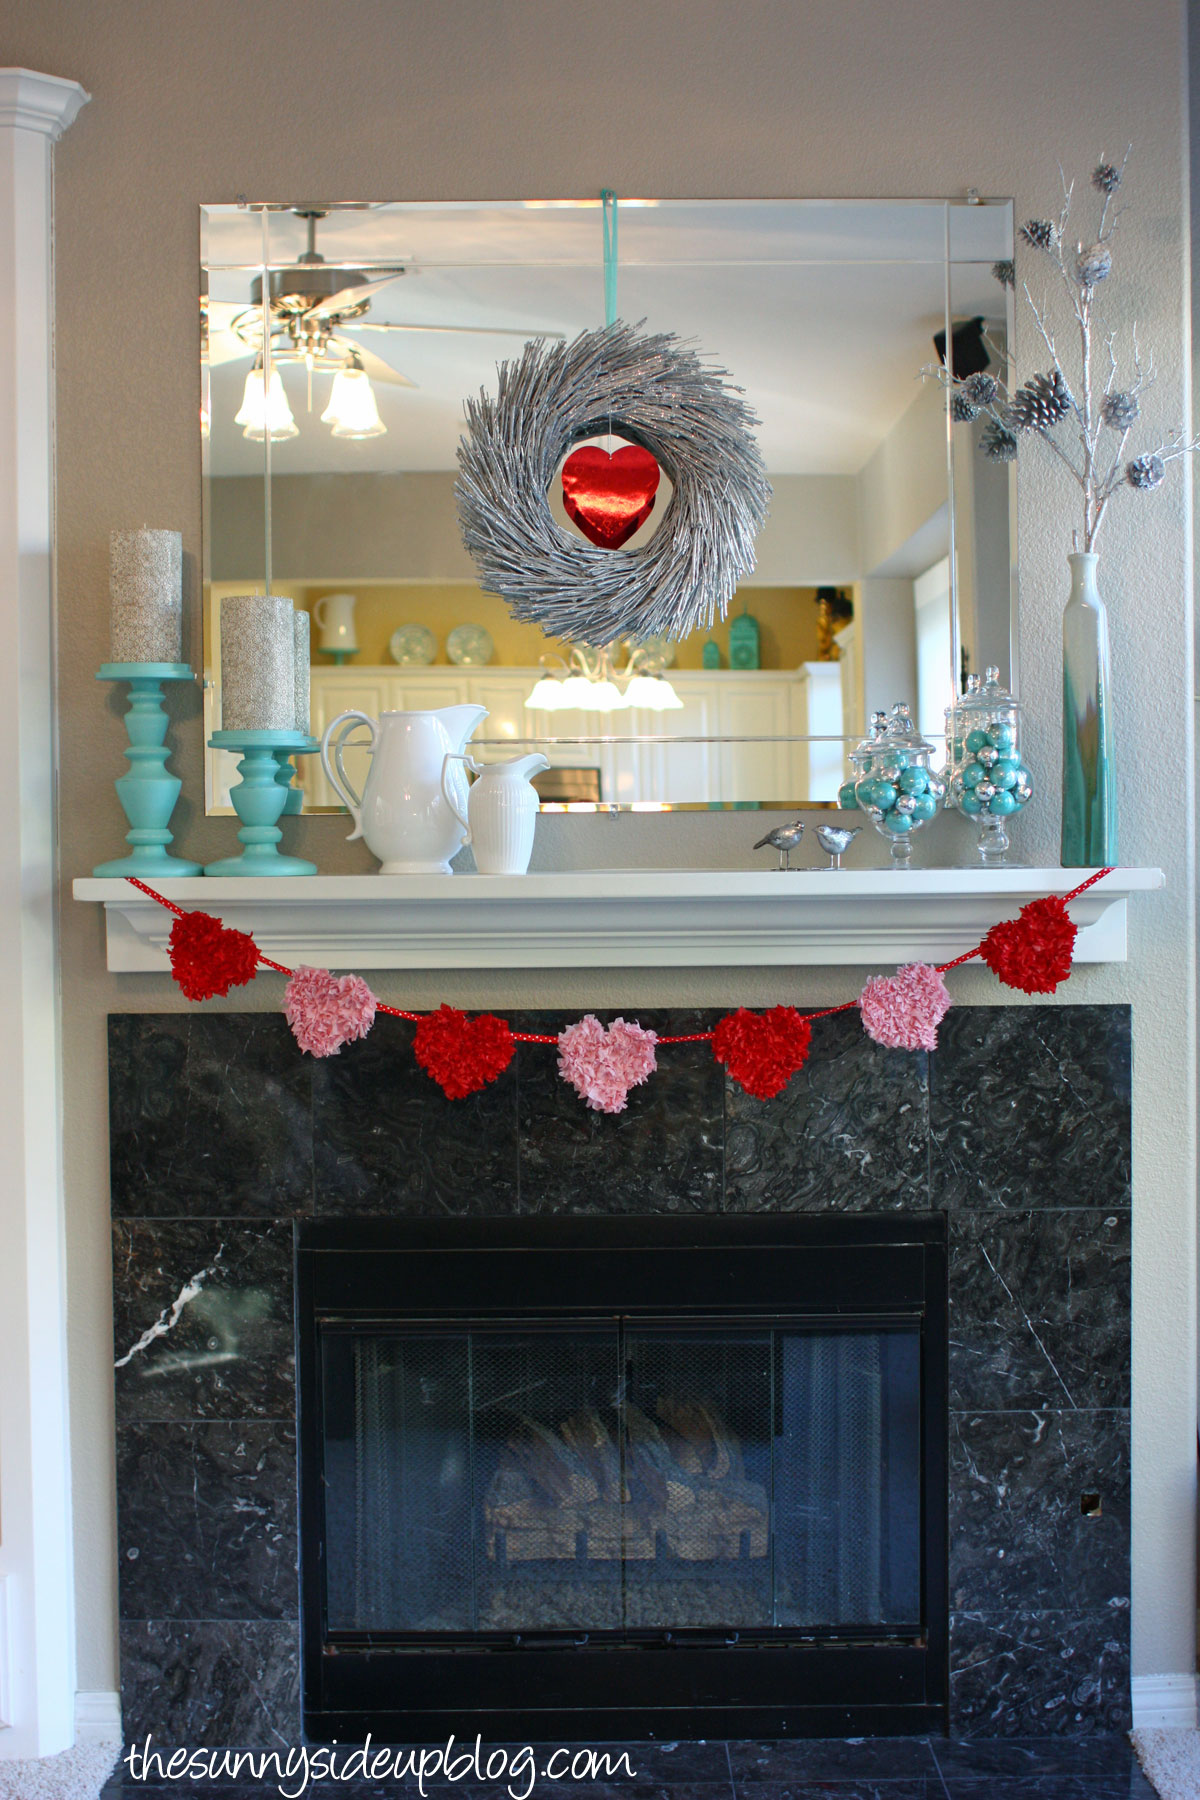 over 10 fun ideas for valentine u0027s day the sunny side up blog